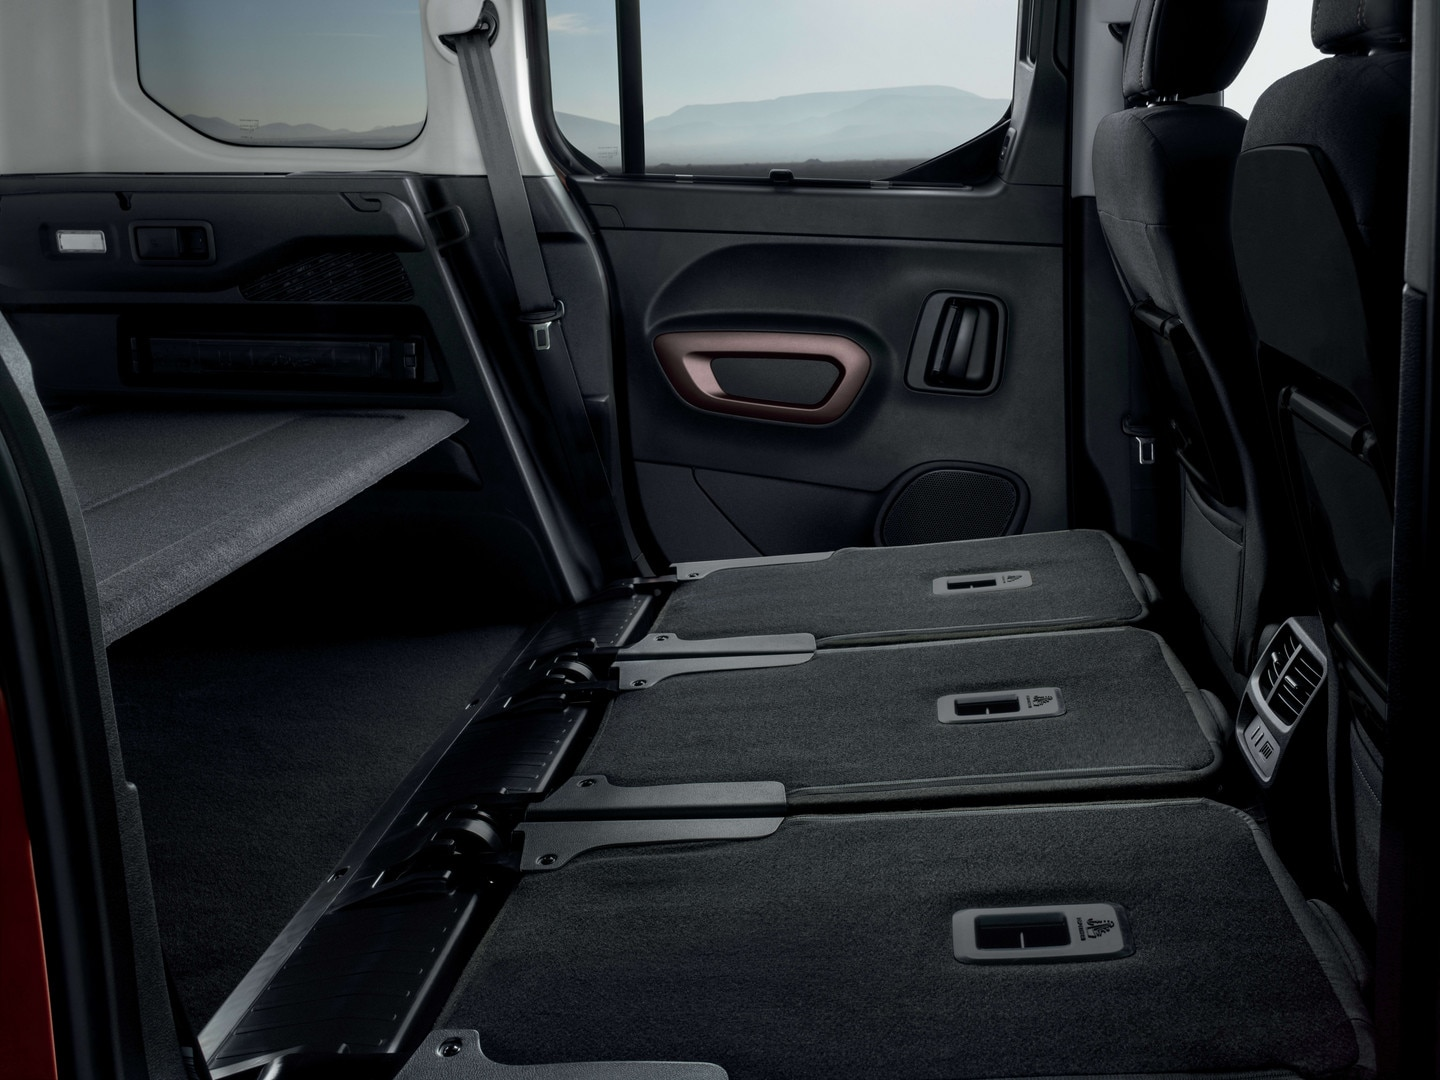 NEW PEUGEOT RIFTER – 3 individual rear seats folded away